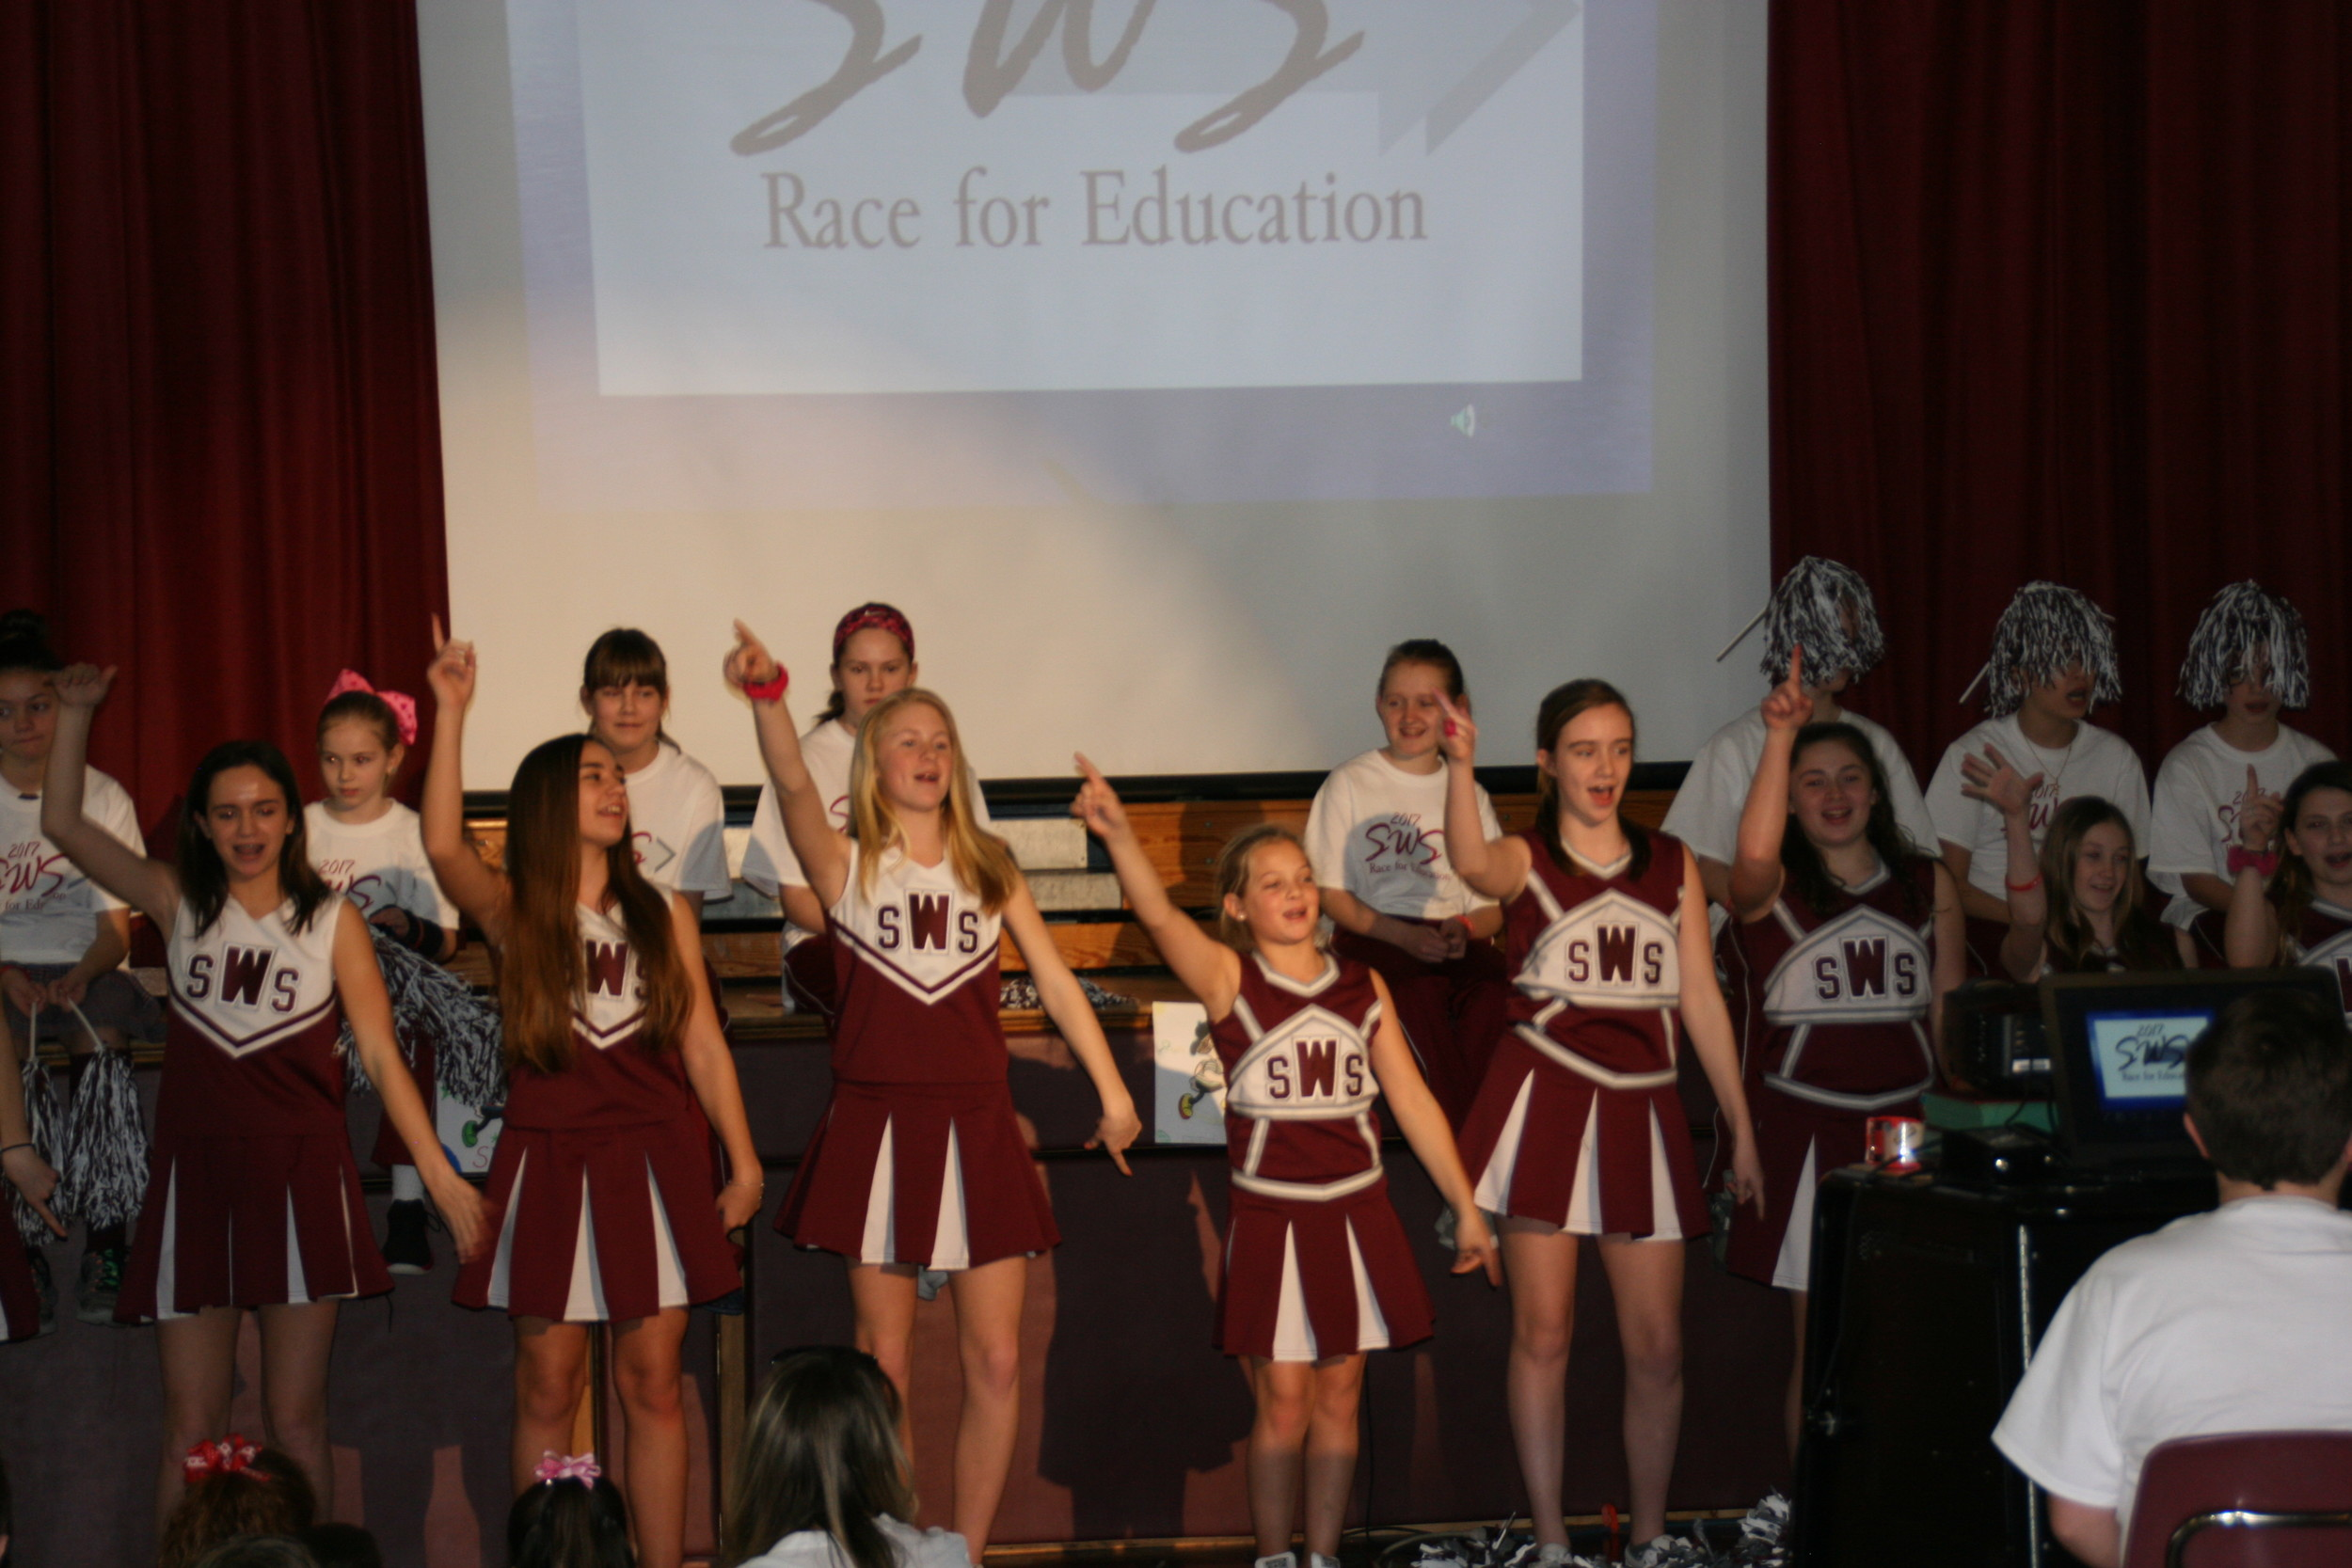 The student committee is the face of the Race for Education. They presented the initiative to their peers with videos and slideshows at a rally on Feb. 14.